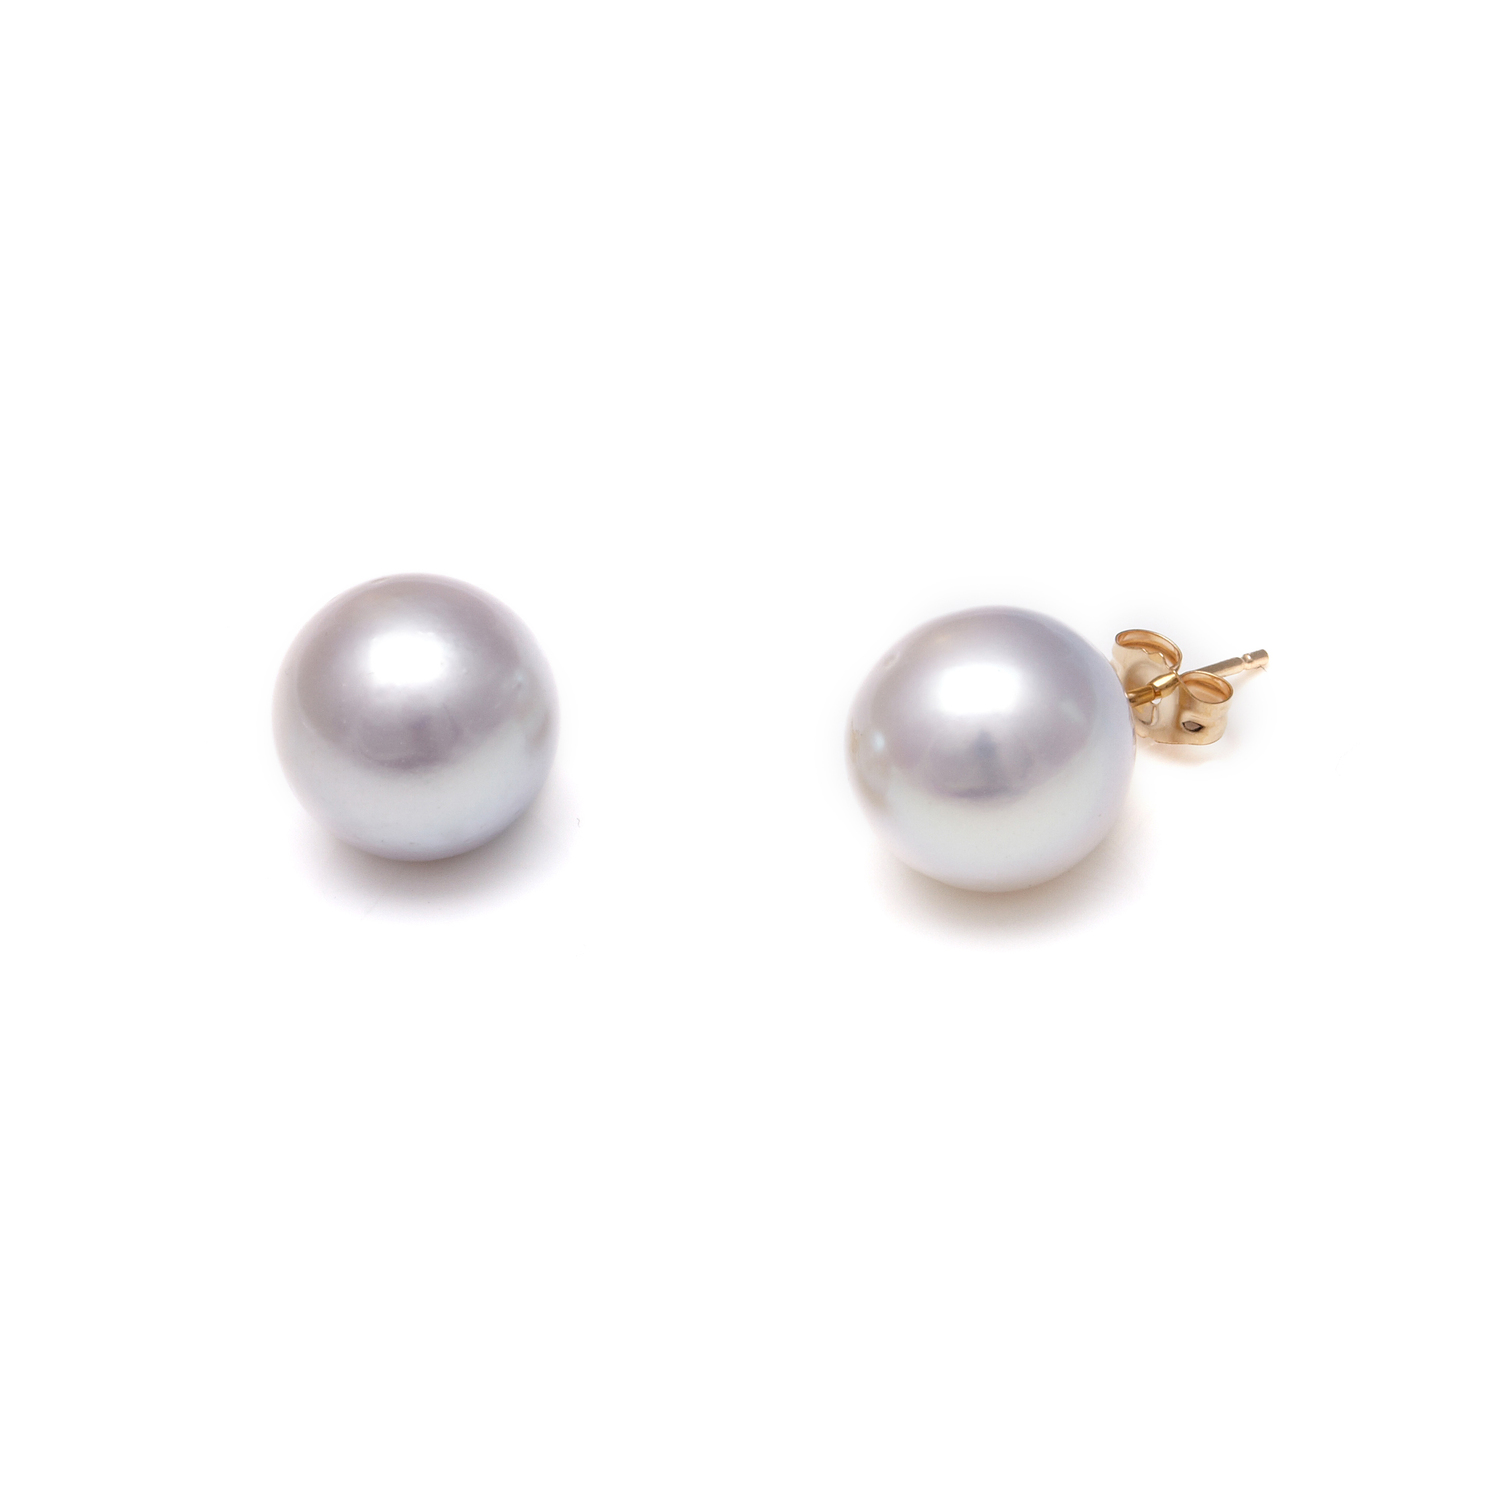 Grey Akoya Pearl Earrings With Gold Studs